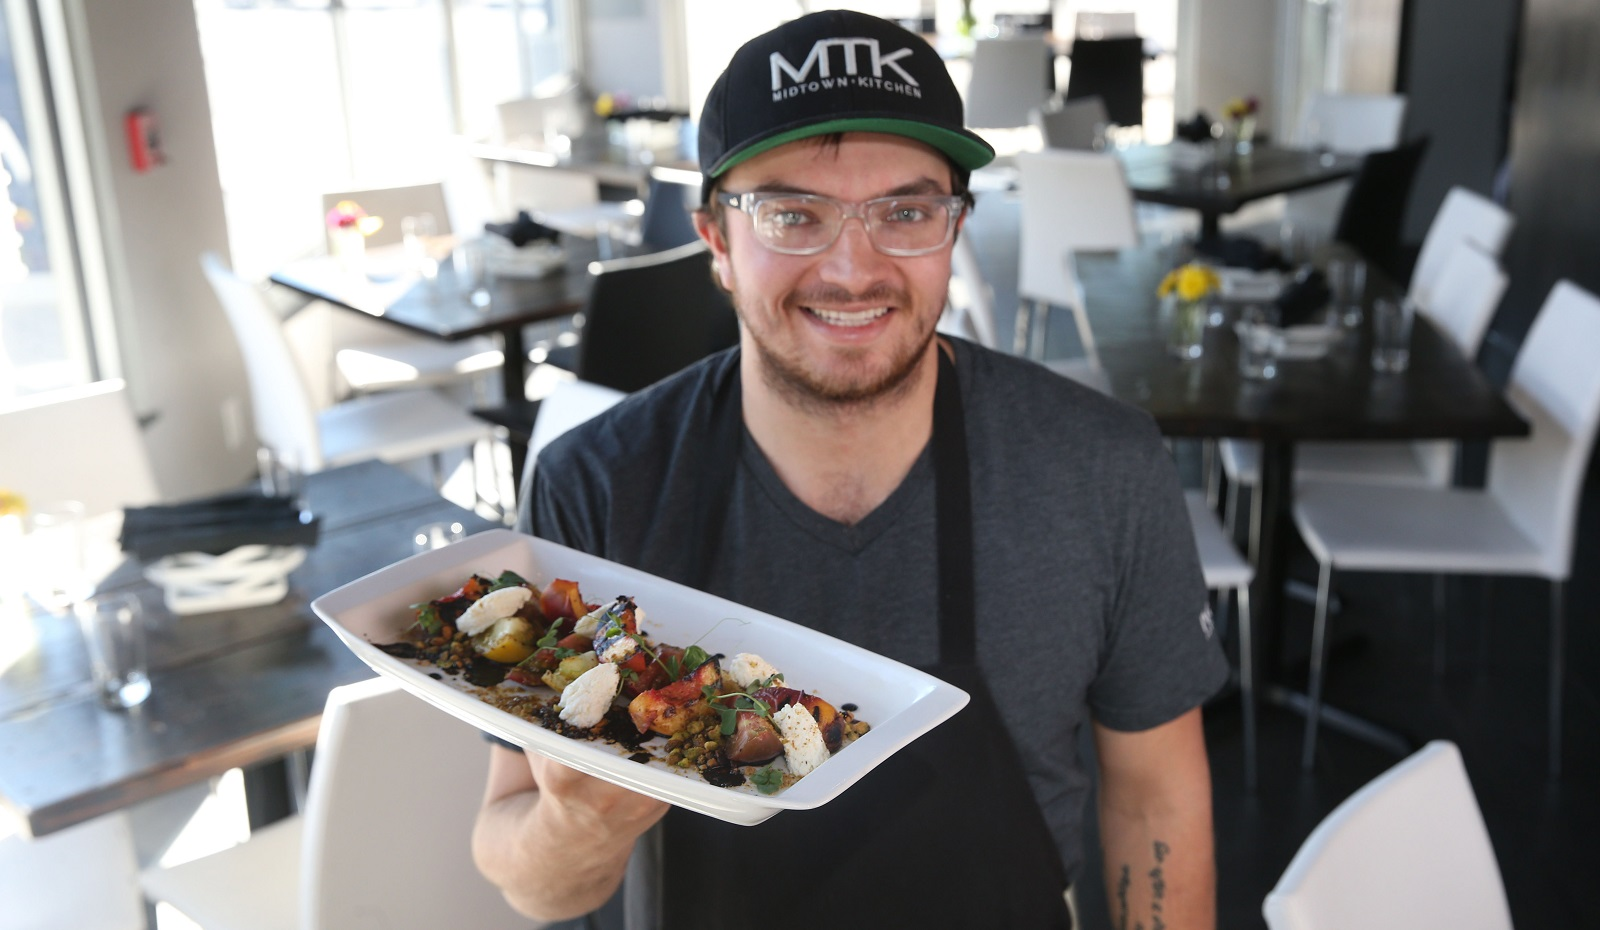 Midtown Kitchen executive chef Adrian Bylewski presents the grilled peach and tomato salad in September 2016. (Sharon Cantillon/Buffalo News)